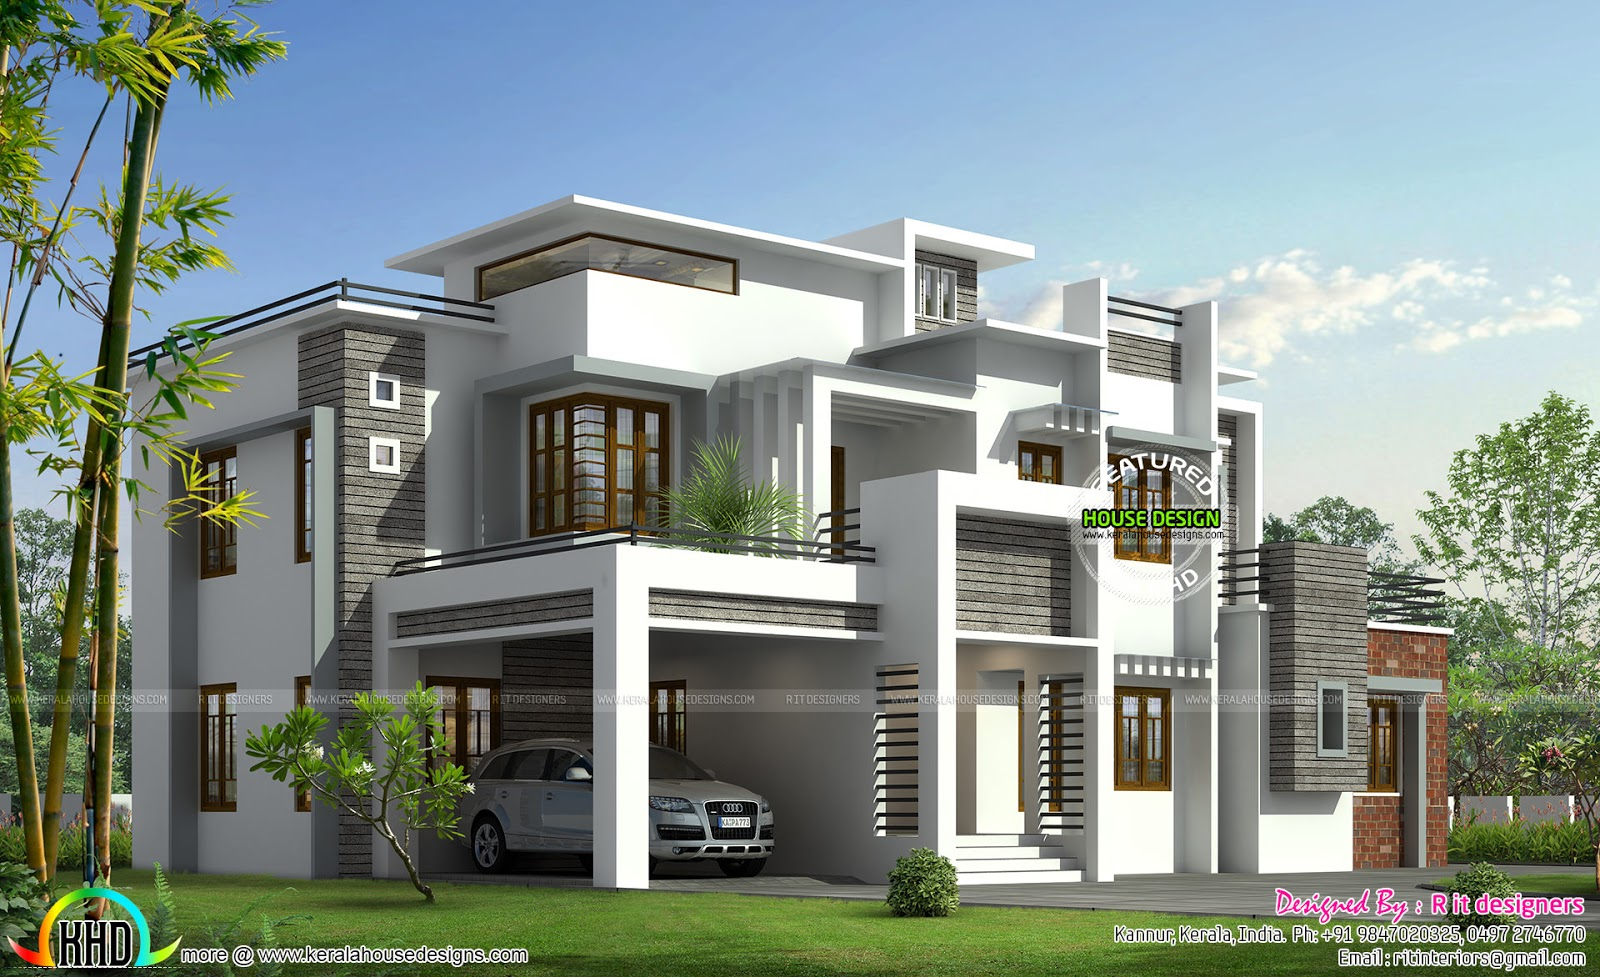 Box model contemporary house kerala home design and for Model house plan